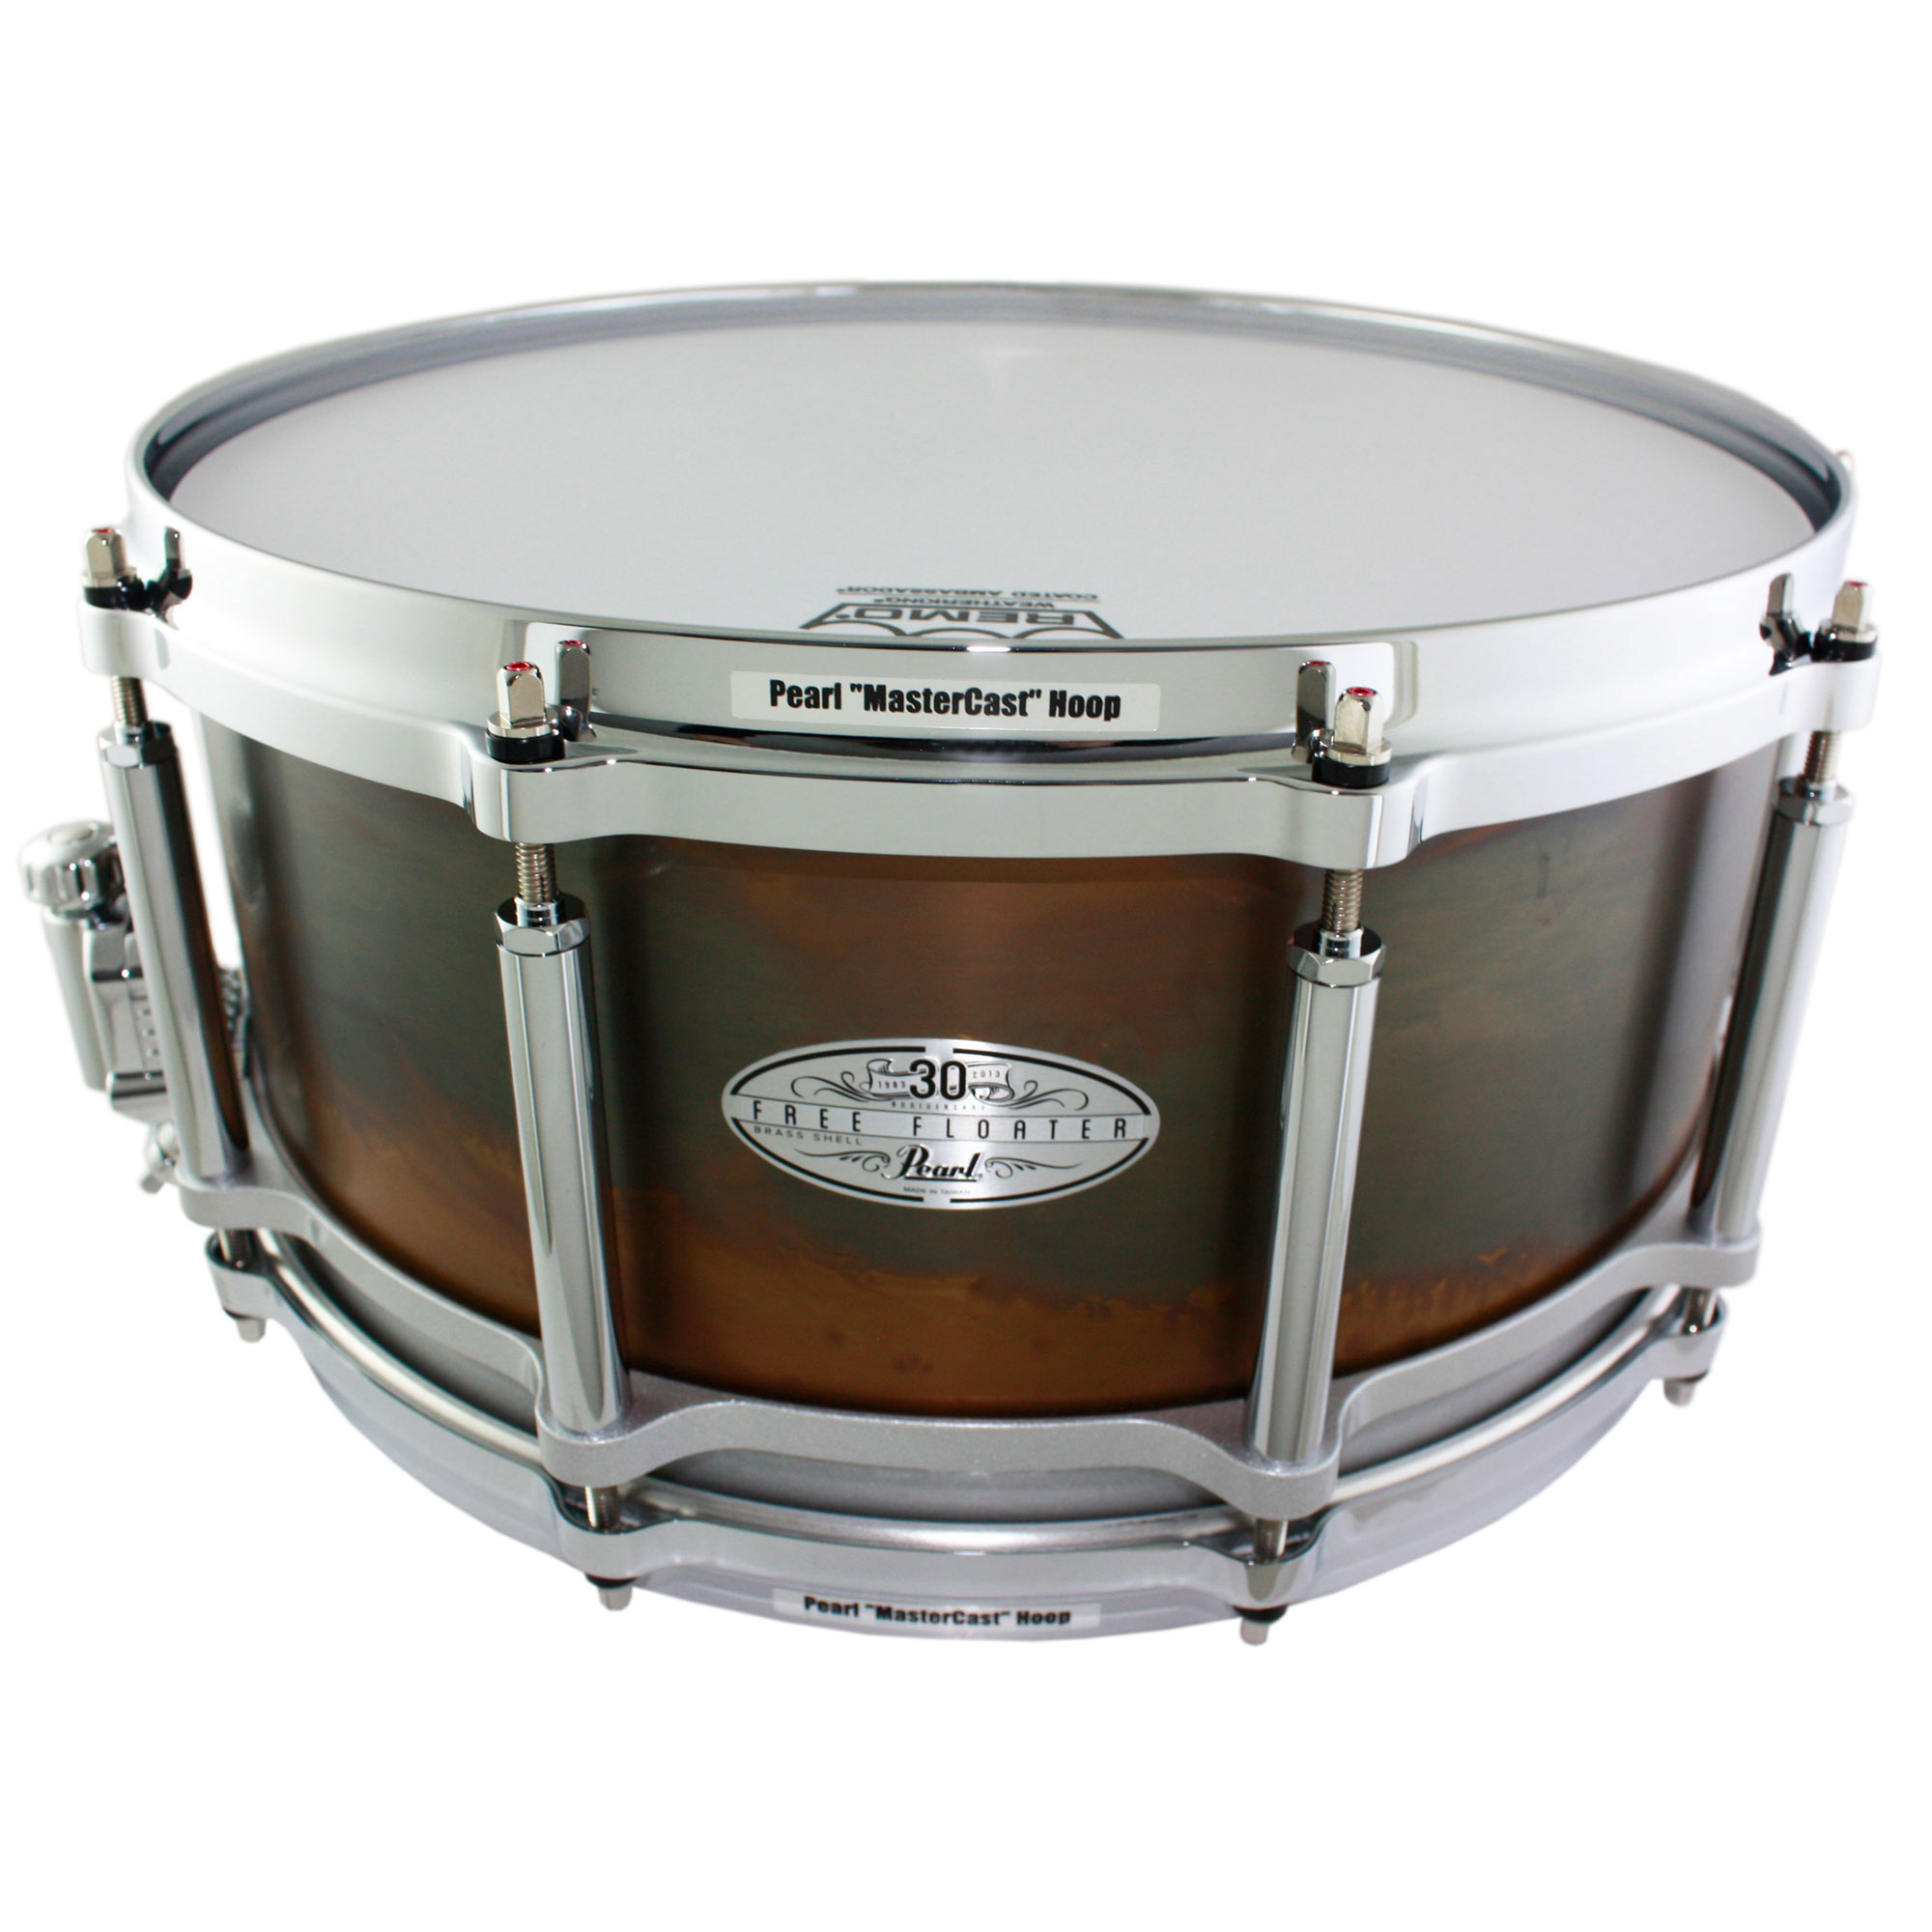 """Pearl One-of-a-Kind 30th Anniversary 14"""" x 6.5"""" Free Floating 3mm Brass Snare Drum with Leather Case #80"""